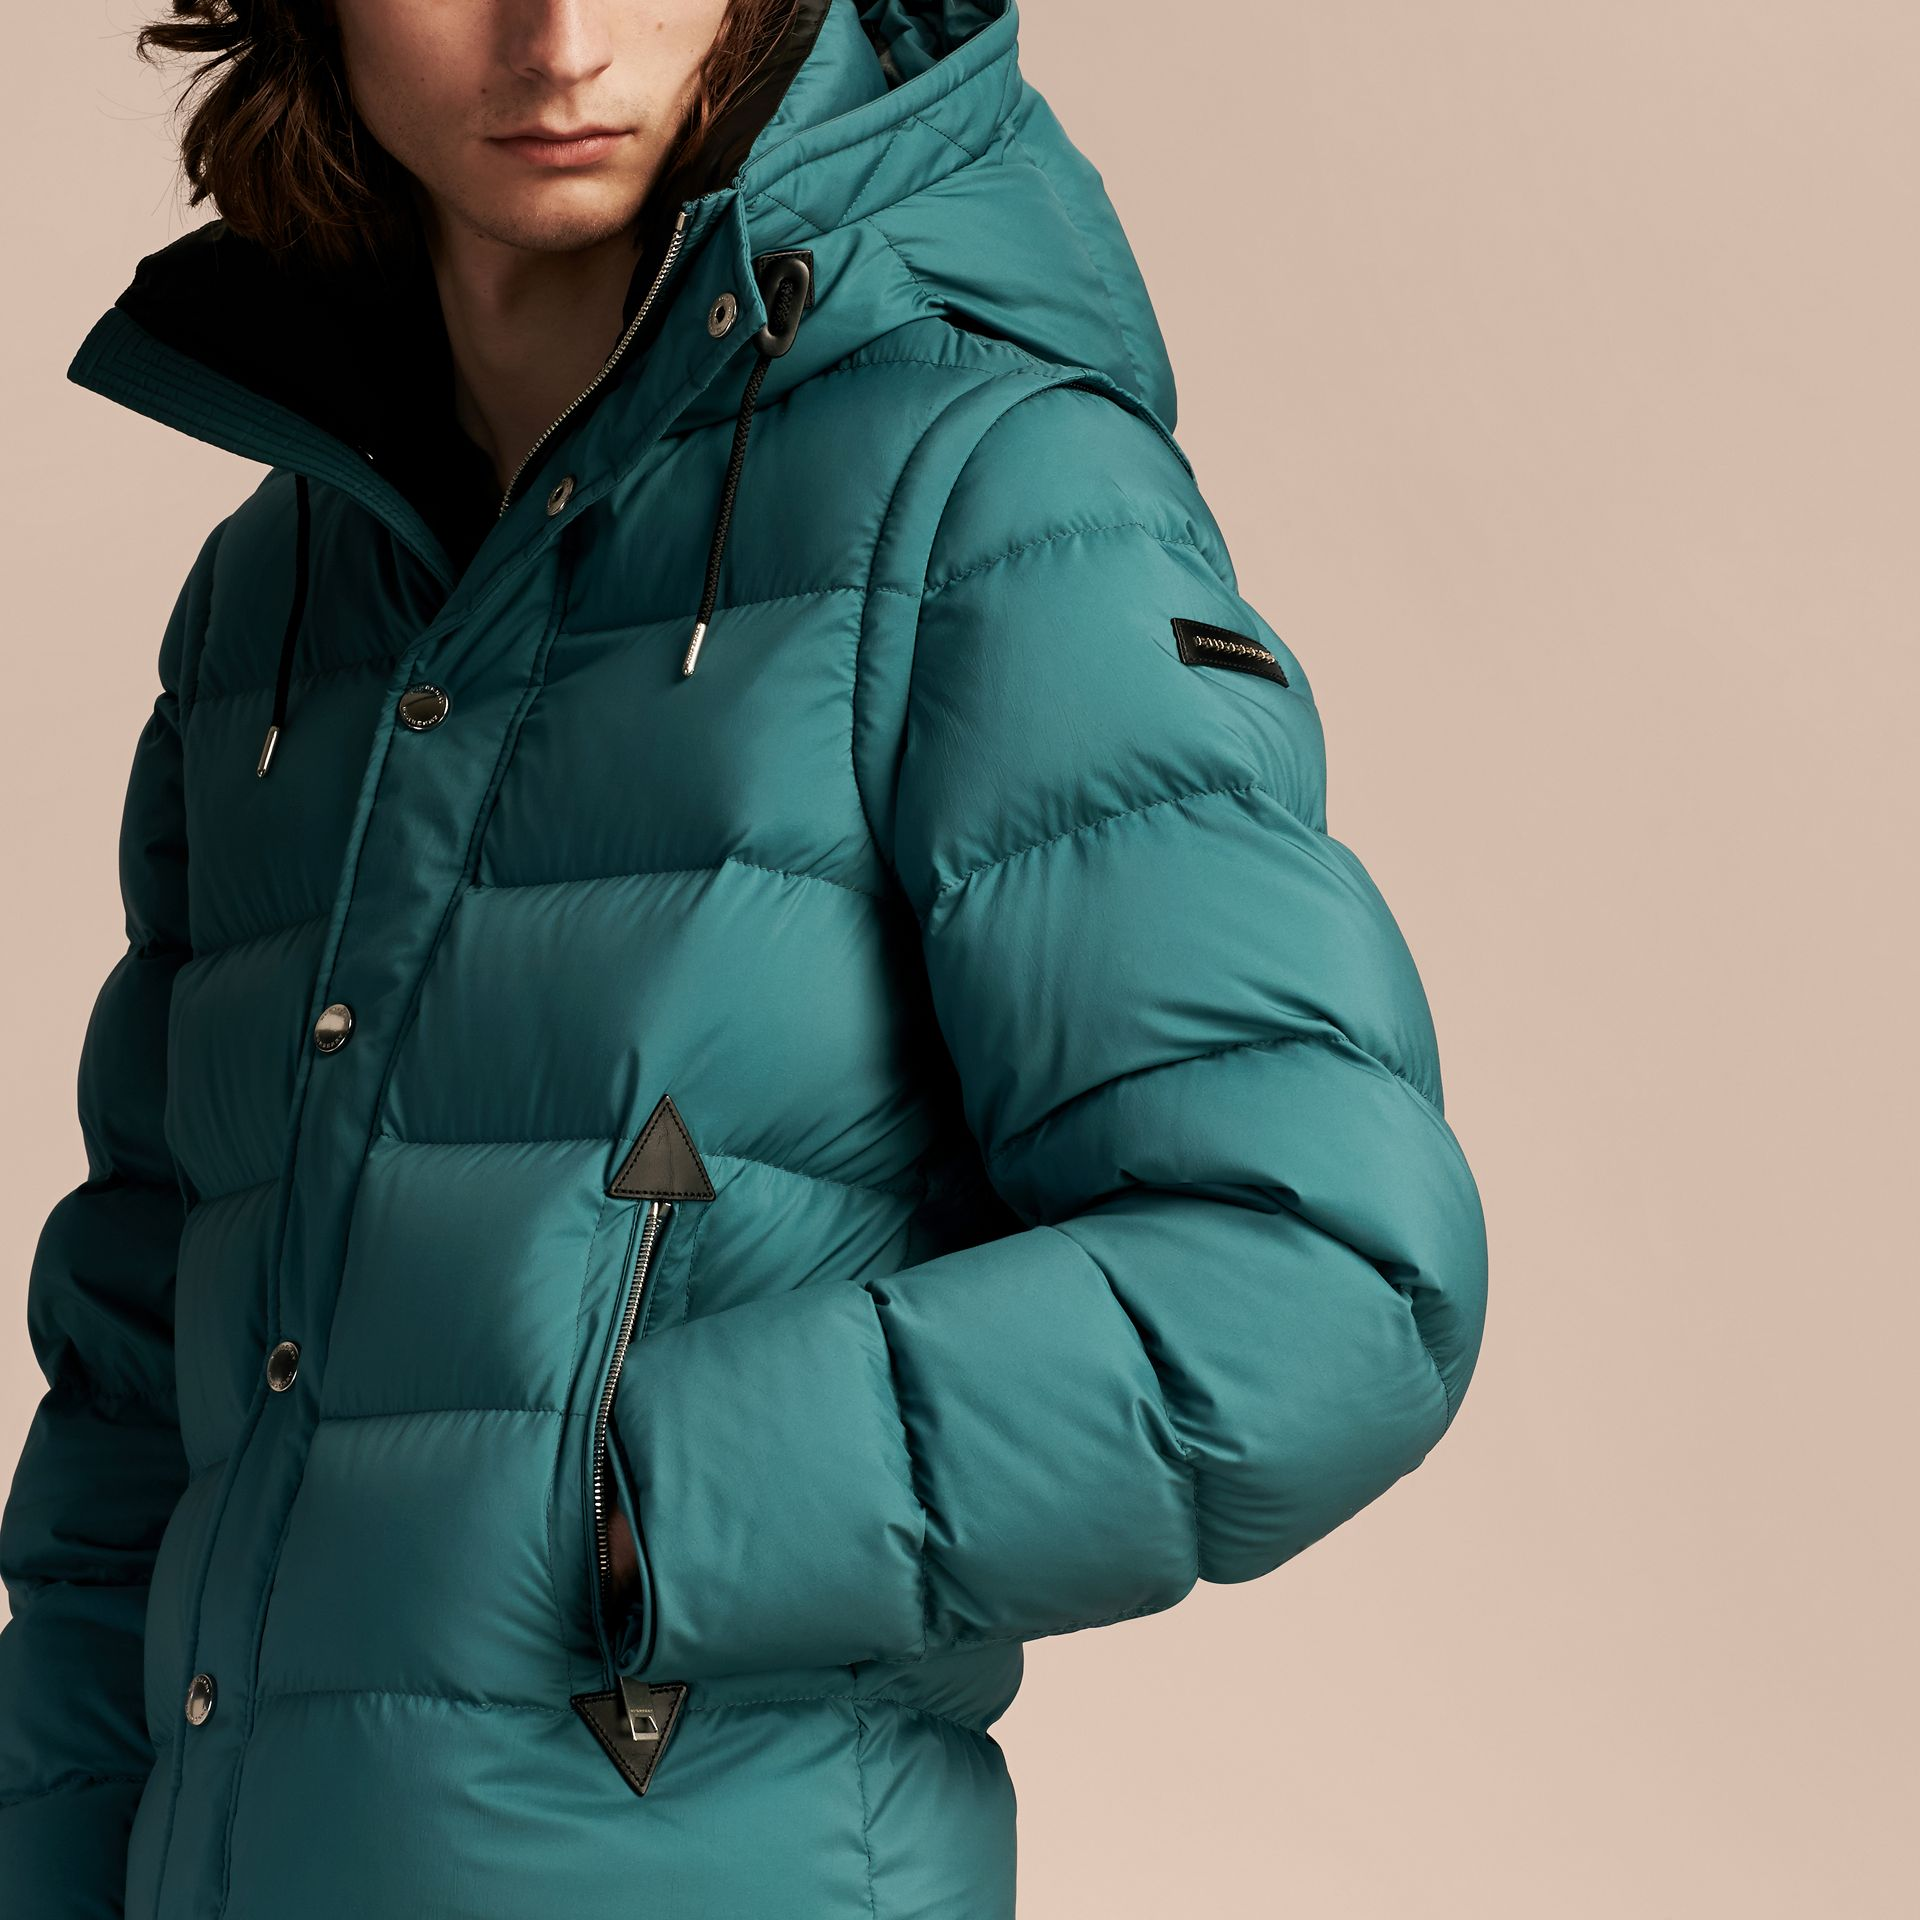 Down-filled Hooded Jacket with Detachable Sleeves in Dusty Teal - gallery image 5